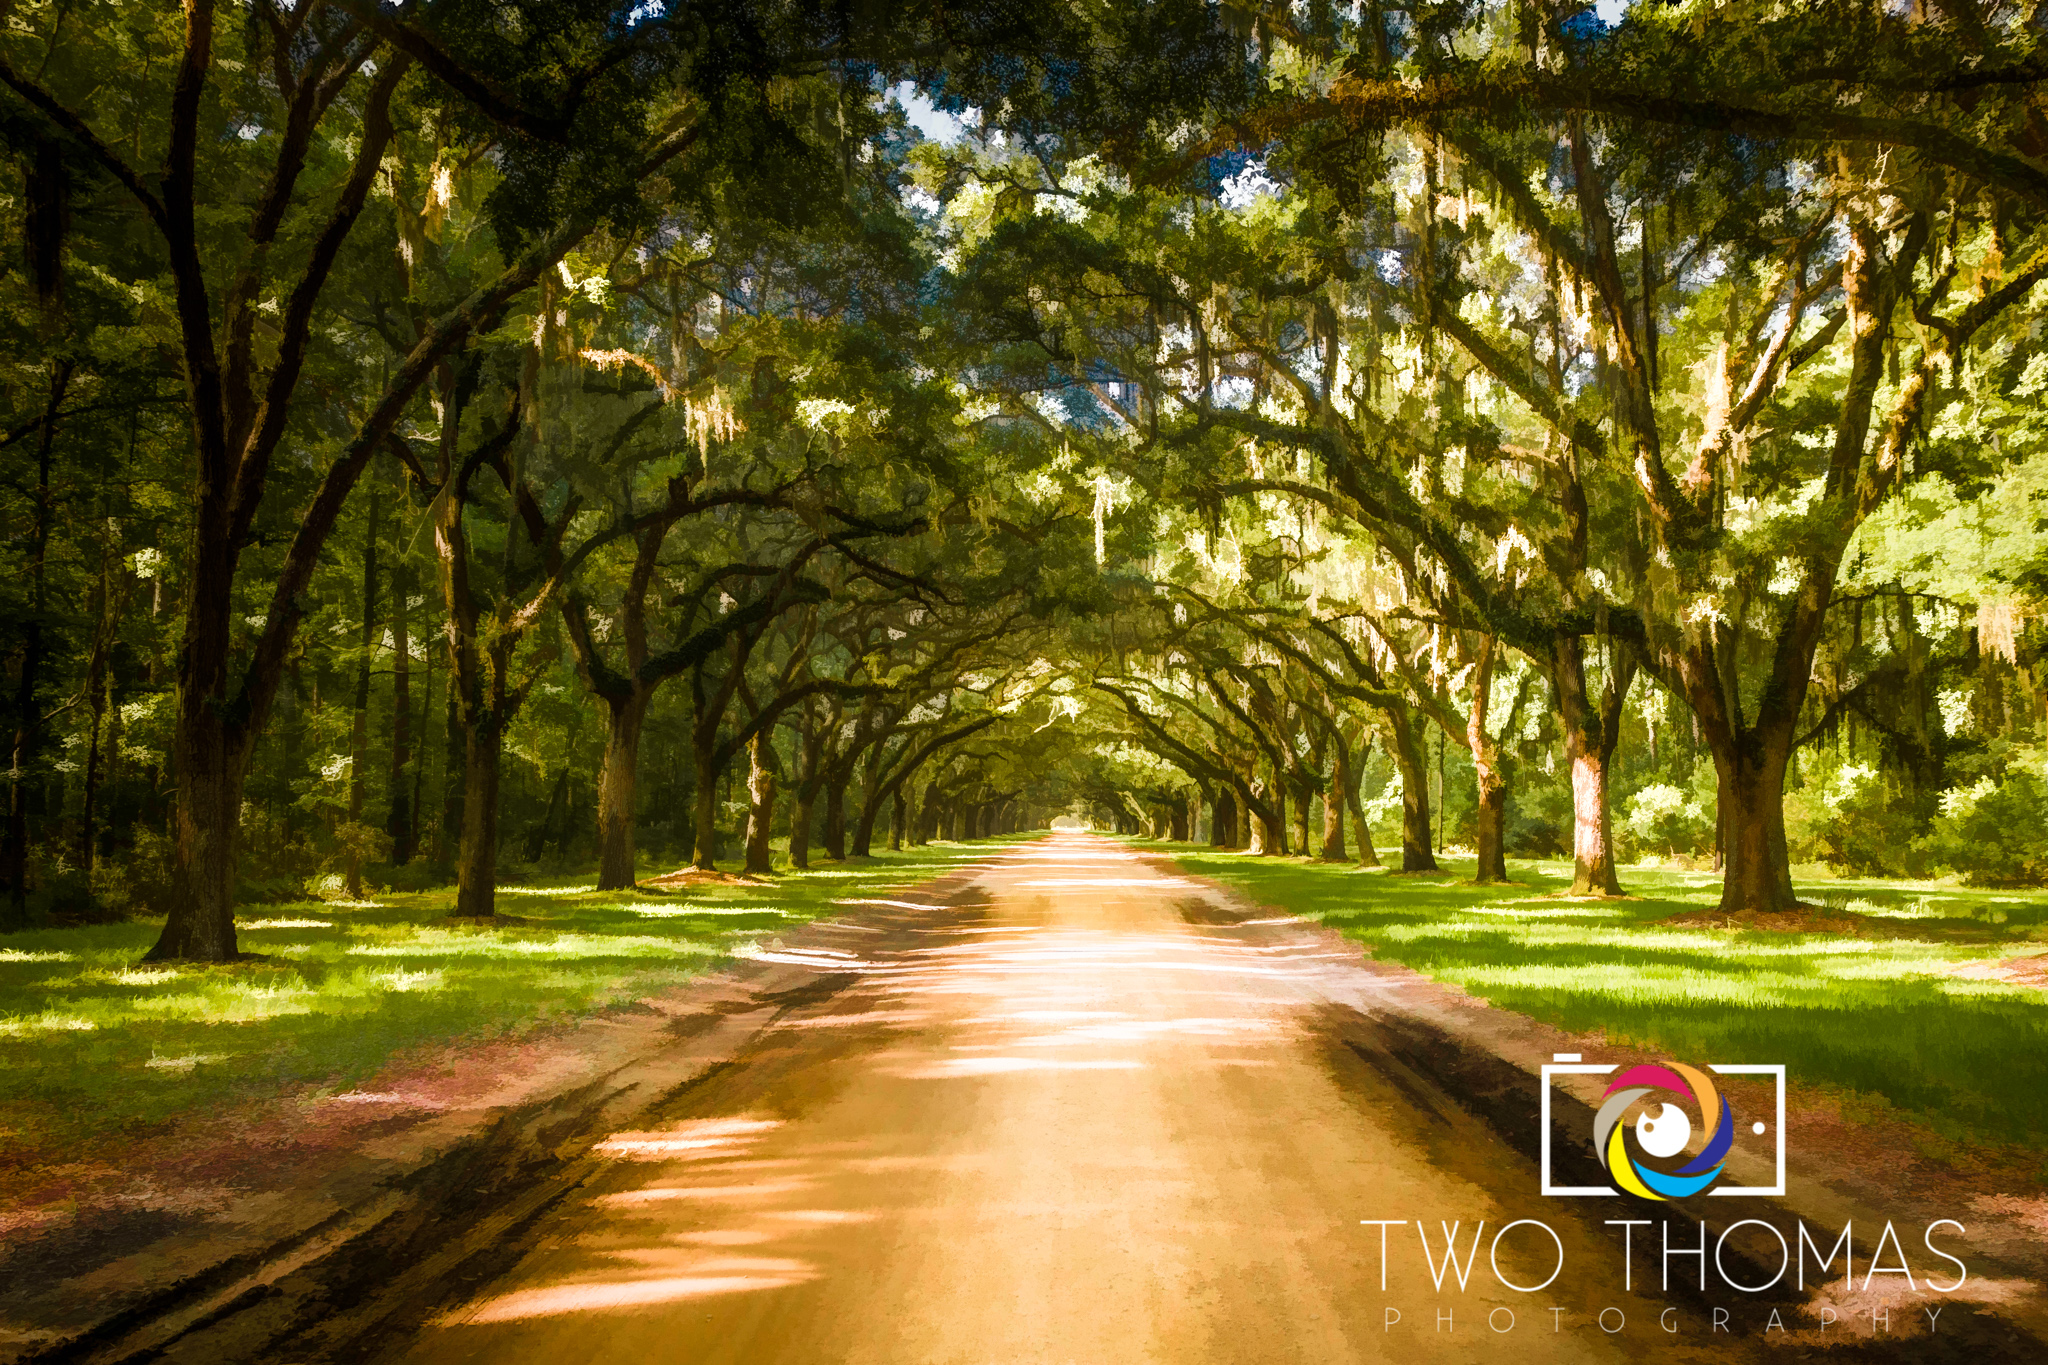 The tree-lined entrance into the Wormsloe Historic Site in Savannah is simply breathtaking!